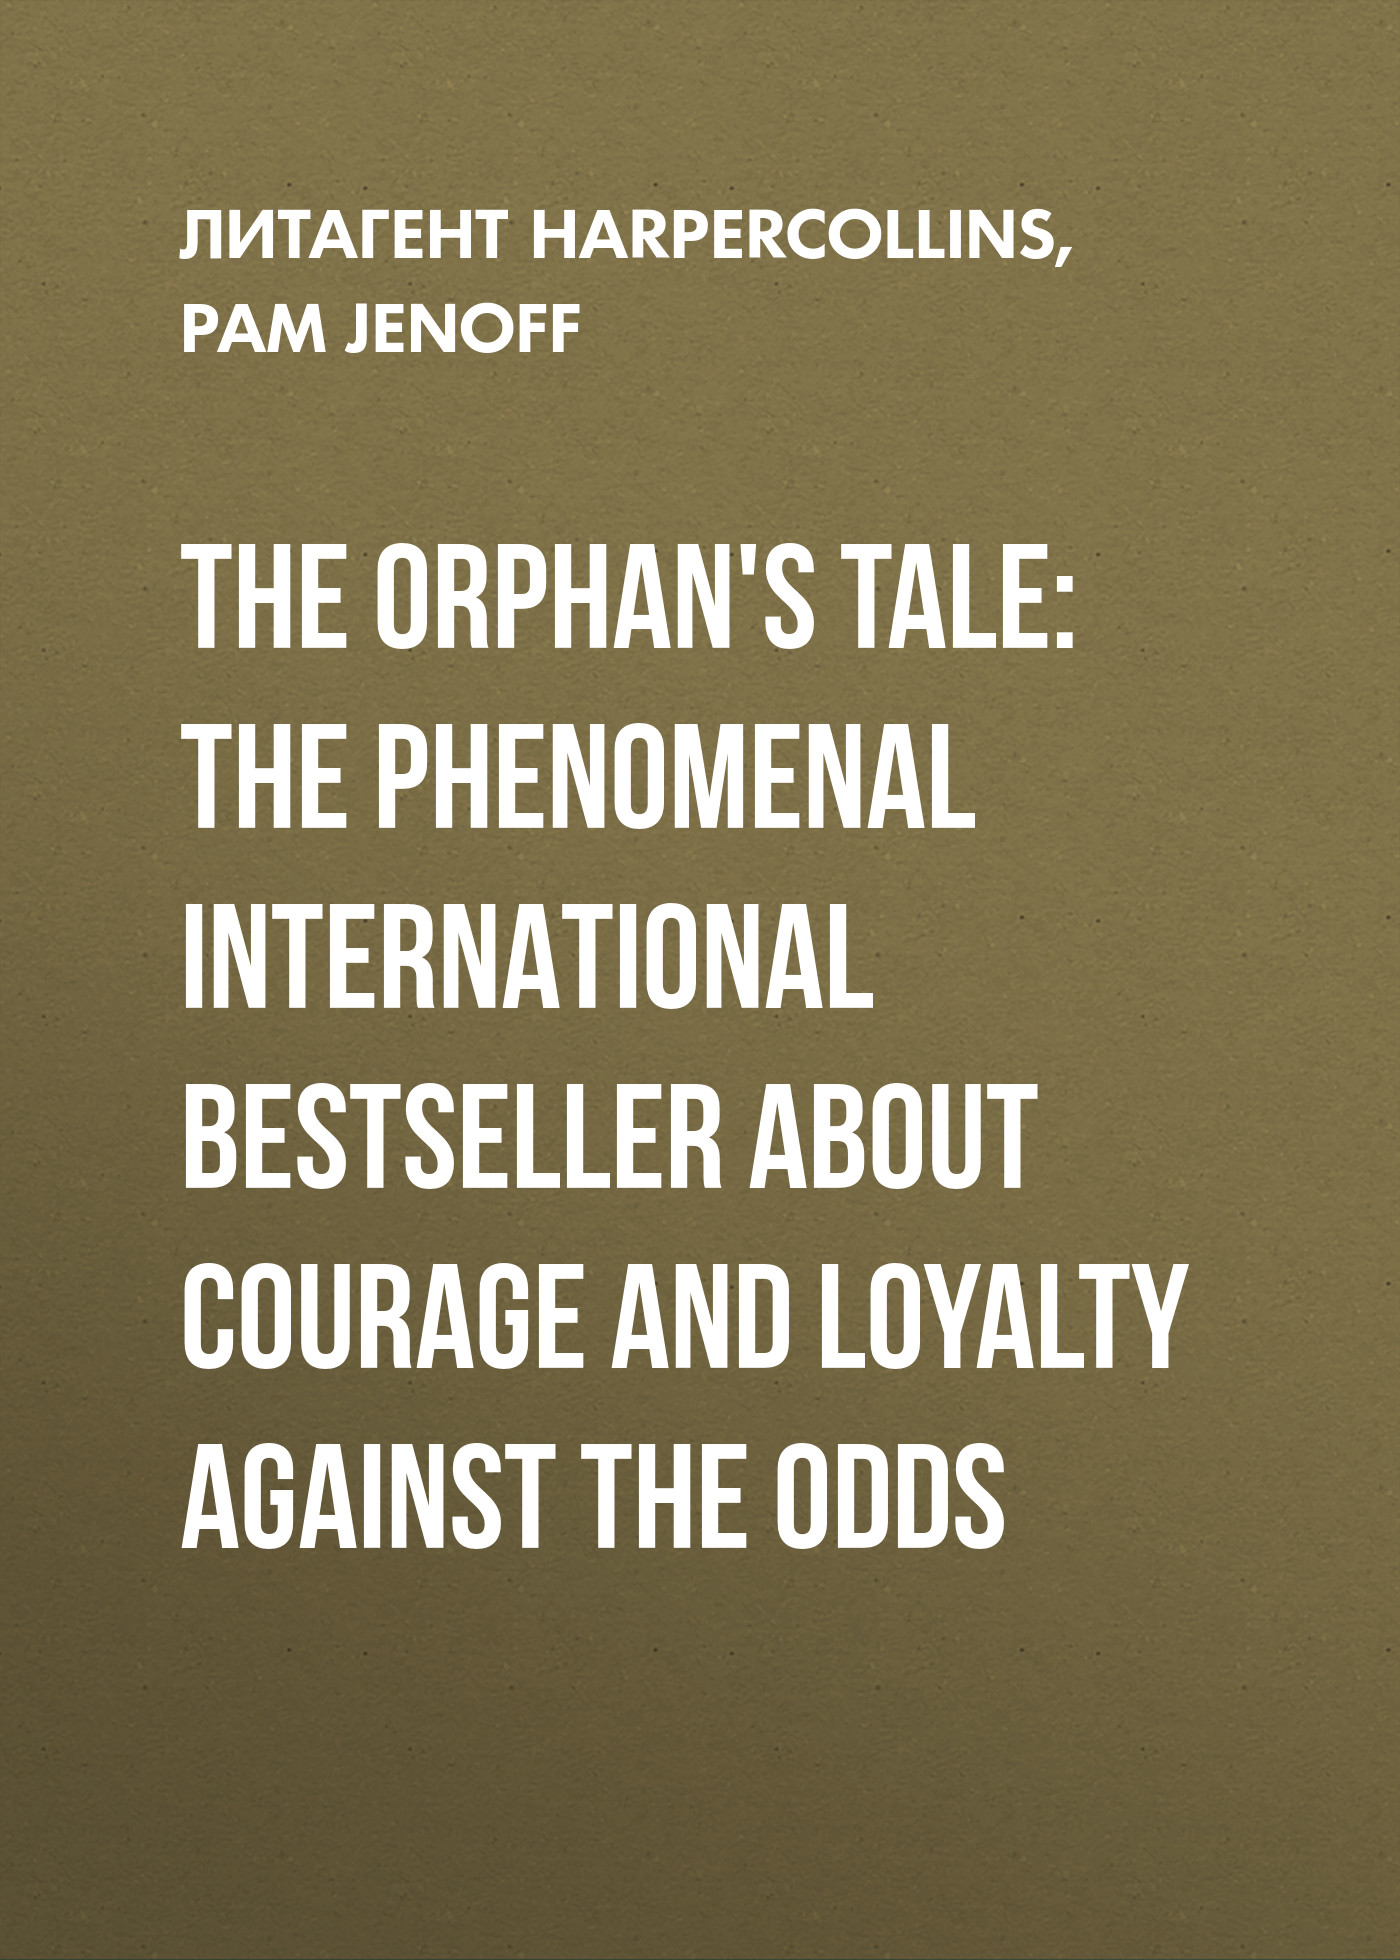 Pam Jenoff The Orphan's Tale: The phenomenal international bestseller about courage and loyalty against the odds delaney jp the girl before international bestseller